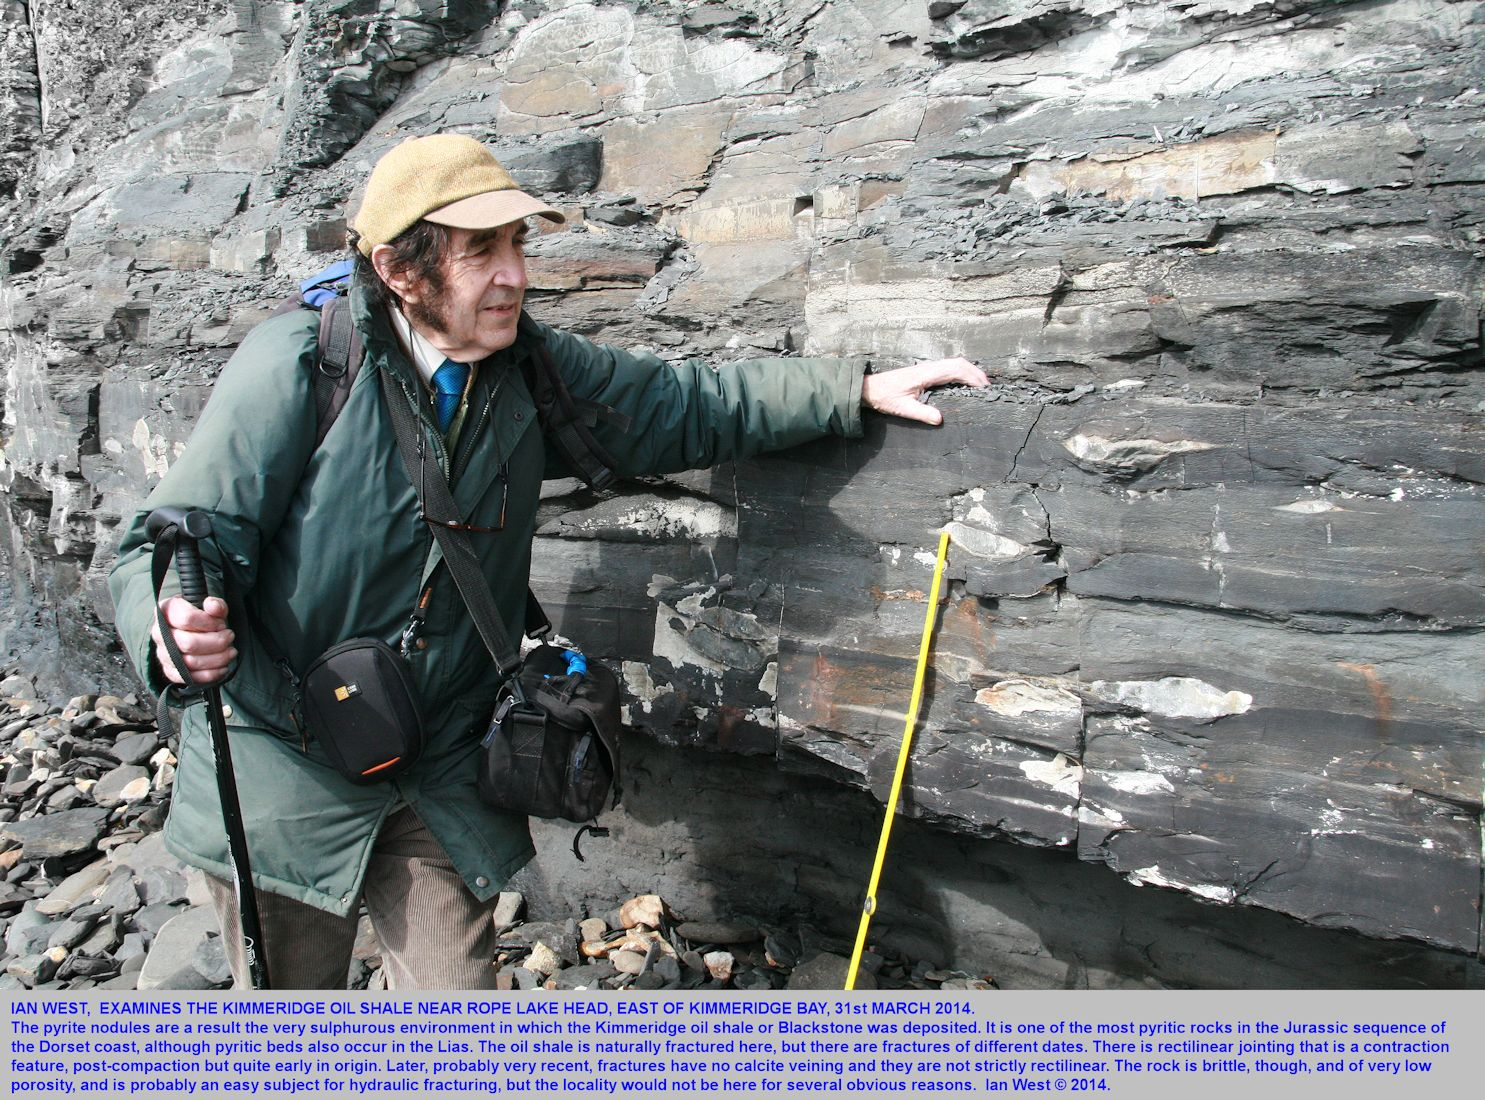 Ian West examines the Kimmeridge Oil Shale or Blackstone, near Rope Lake Head, east of Kimmeridge Bay, Dorset, 31st March 2014